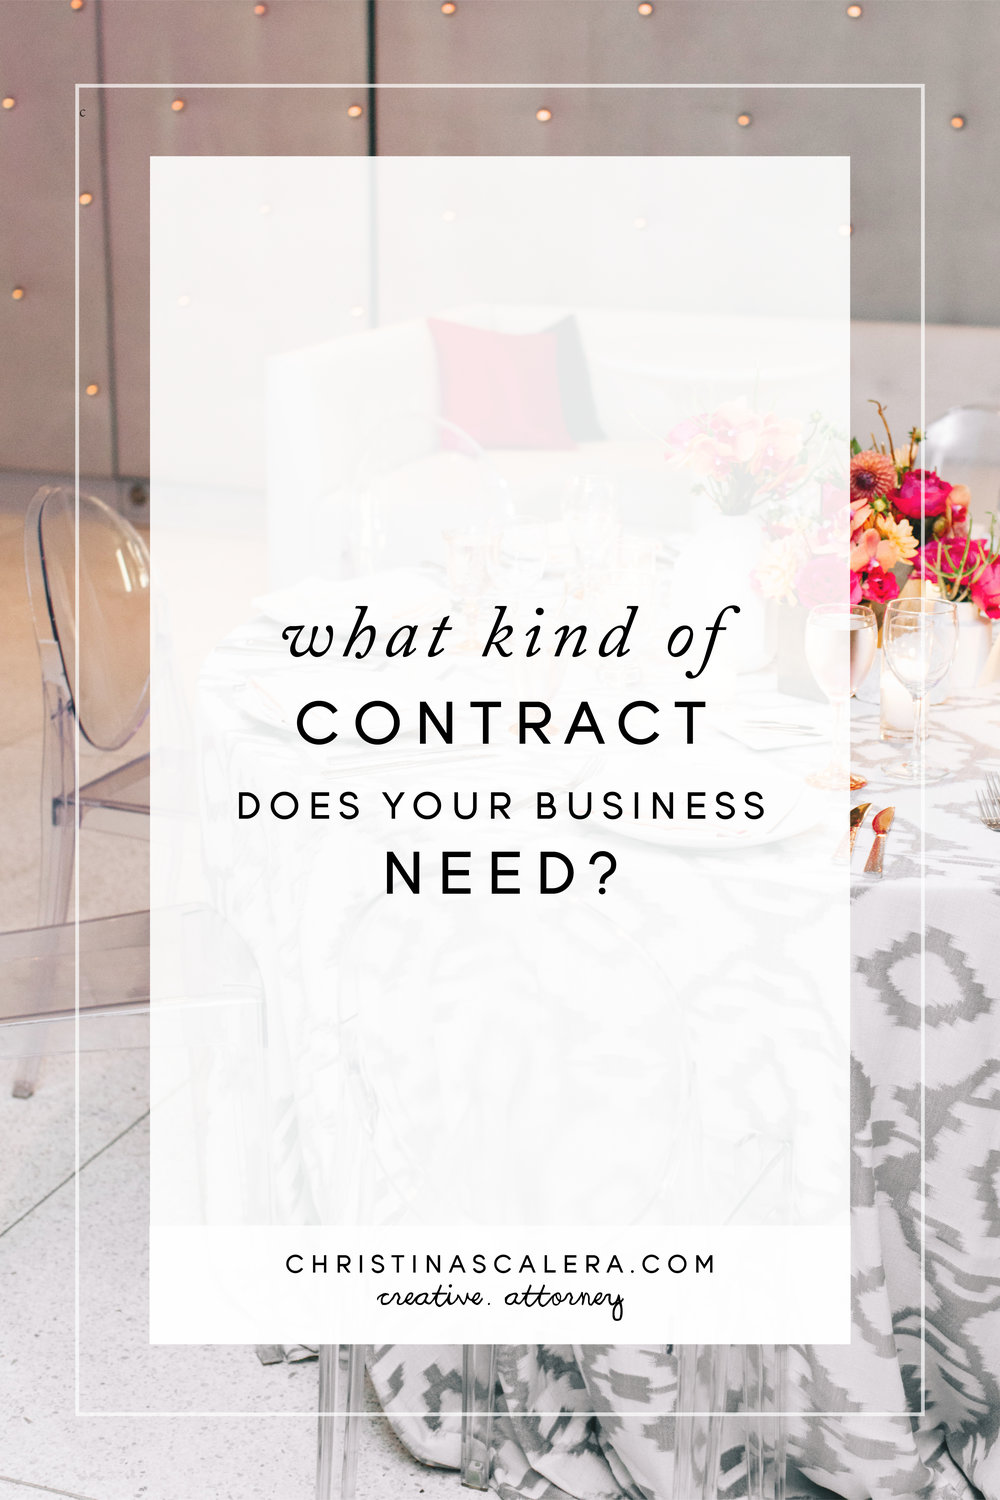 What kind of contract does your business need?